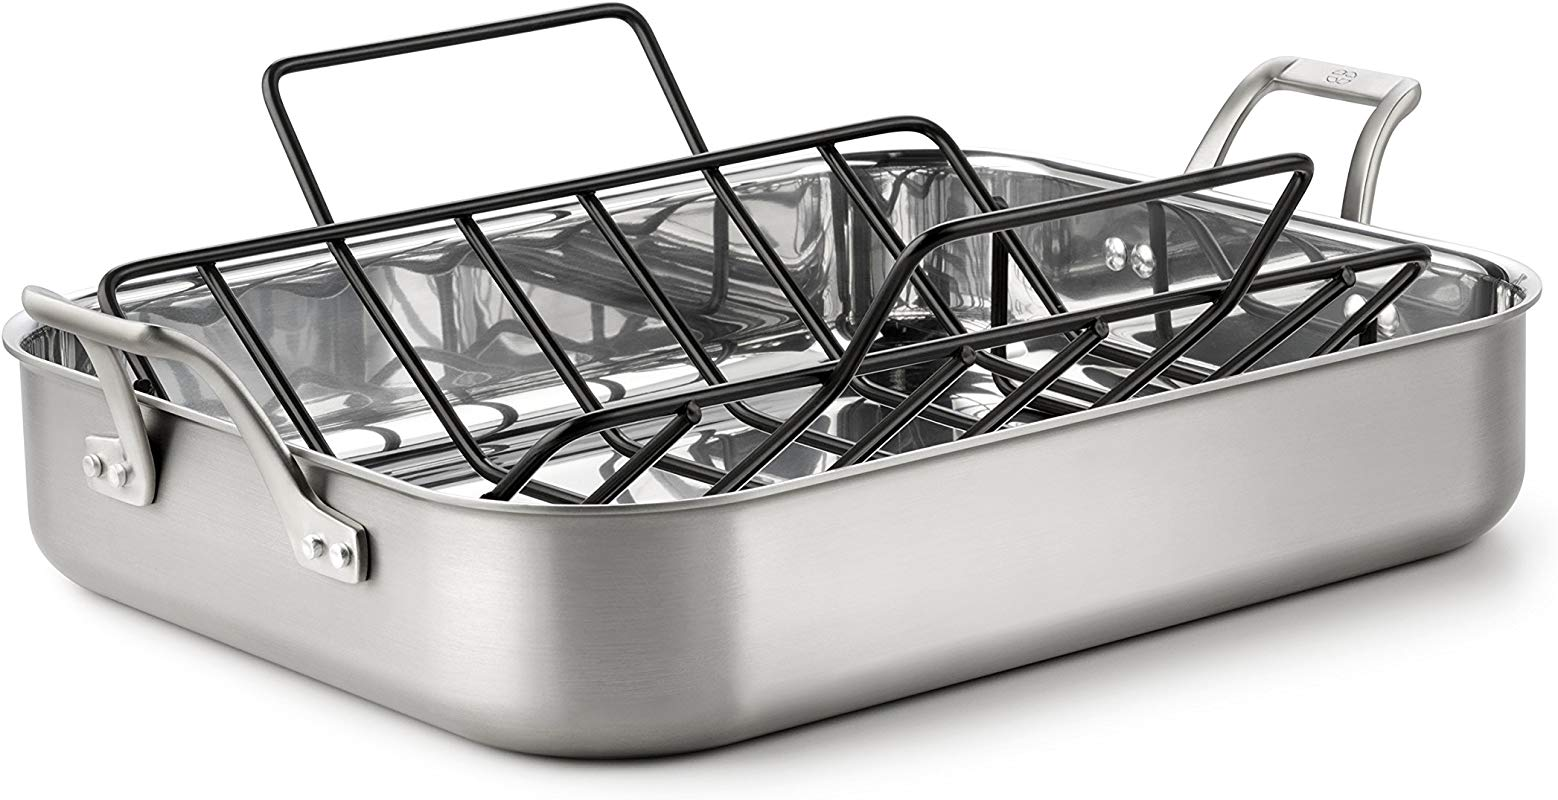 Calphalon 1833931 AccuCore Stainless Steel Roaster With Rack 16 Inch